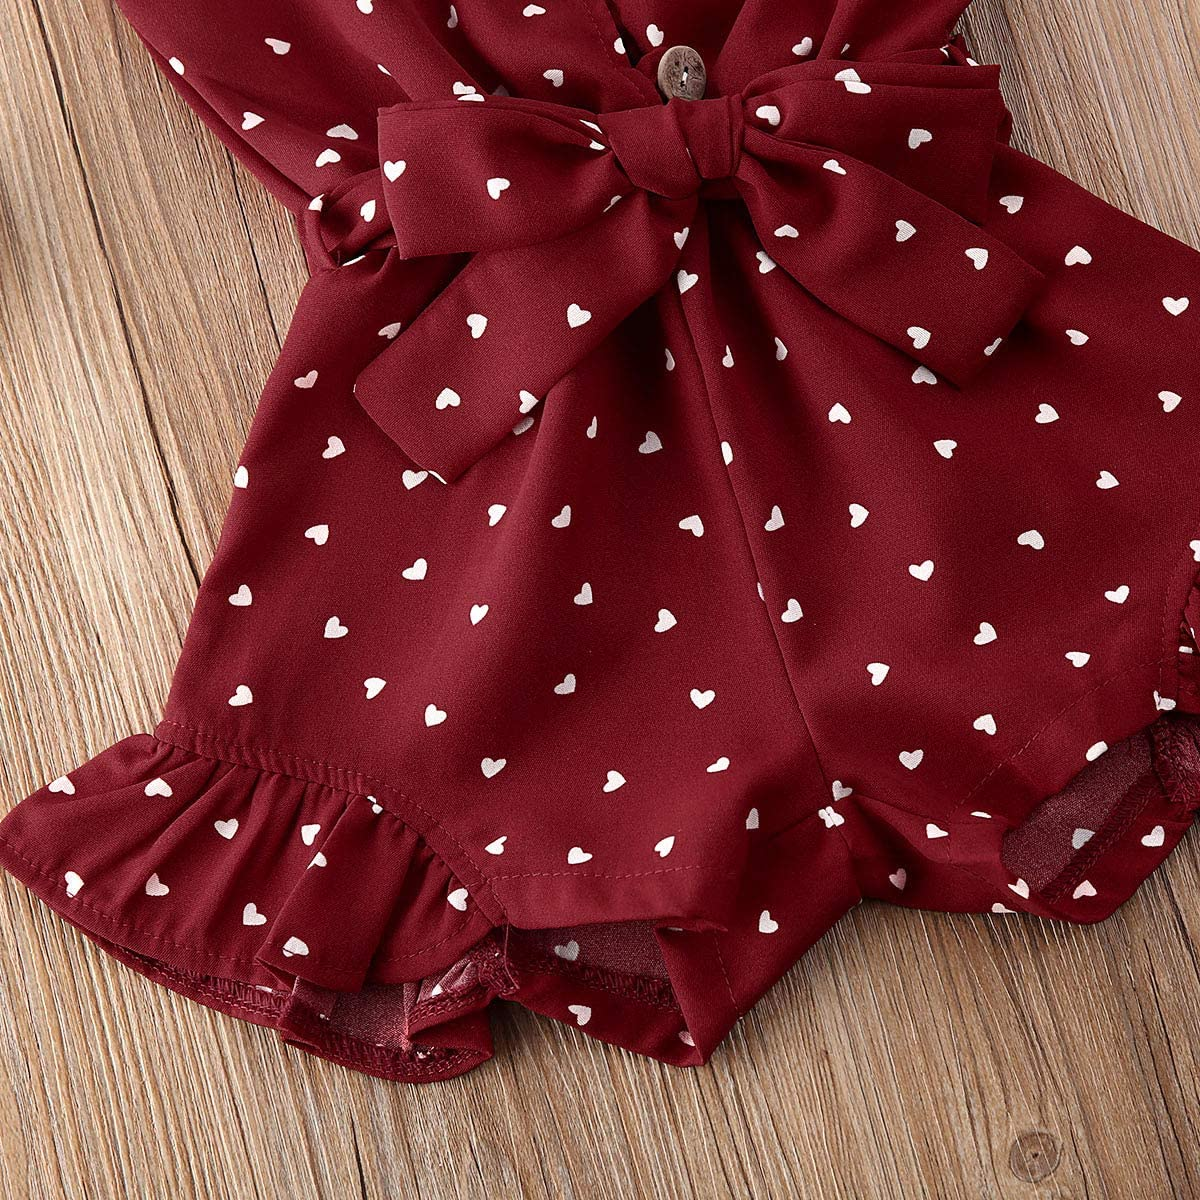 Red/&Heart, 3-4T Balaflyie Toddler Girls Jumpsuit Romper Solid Color Strap One Piece Overall Summer Outfits